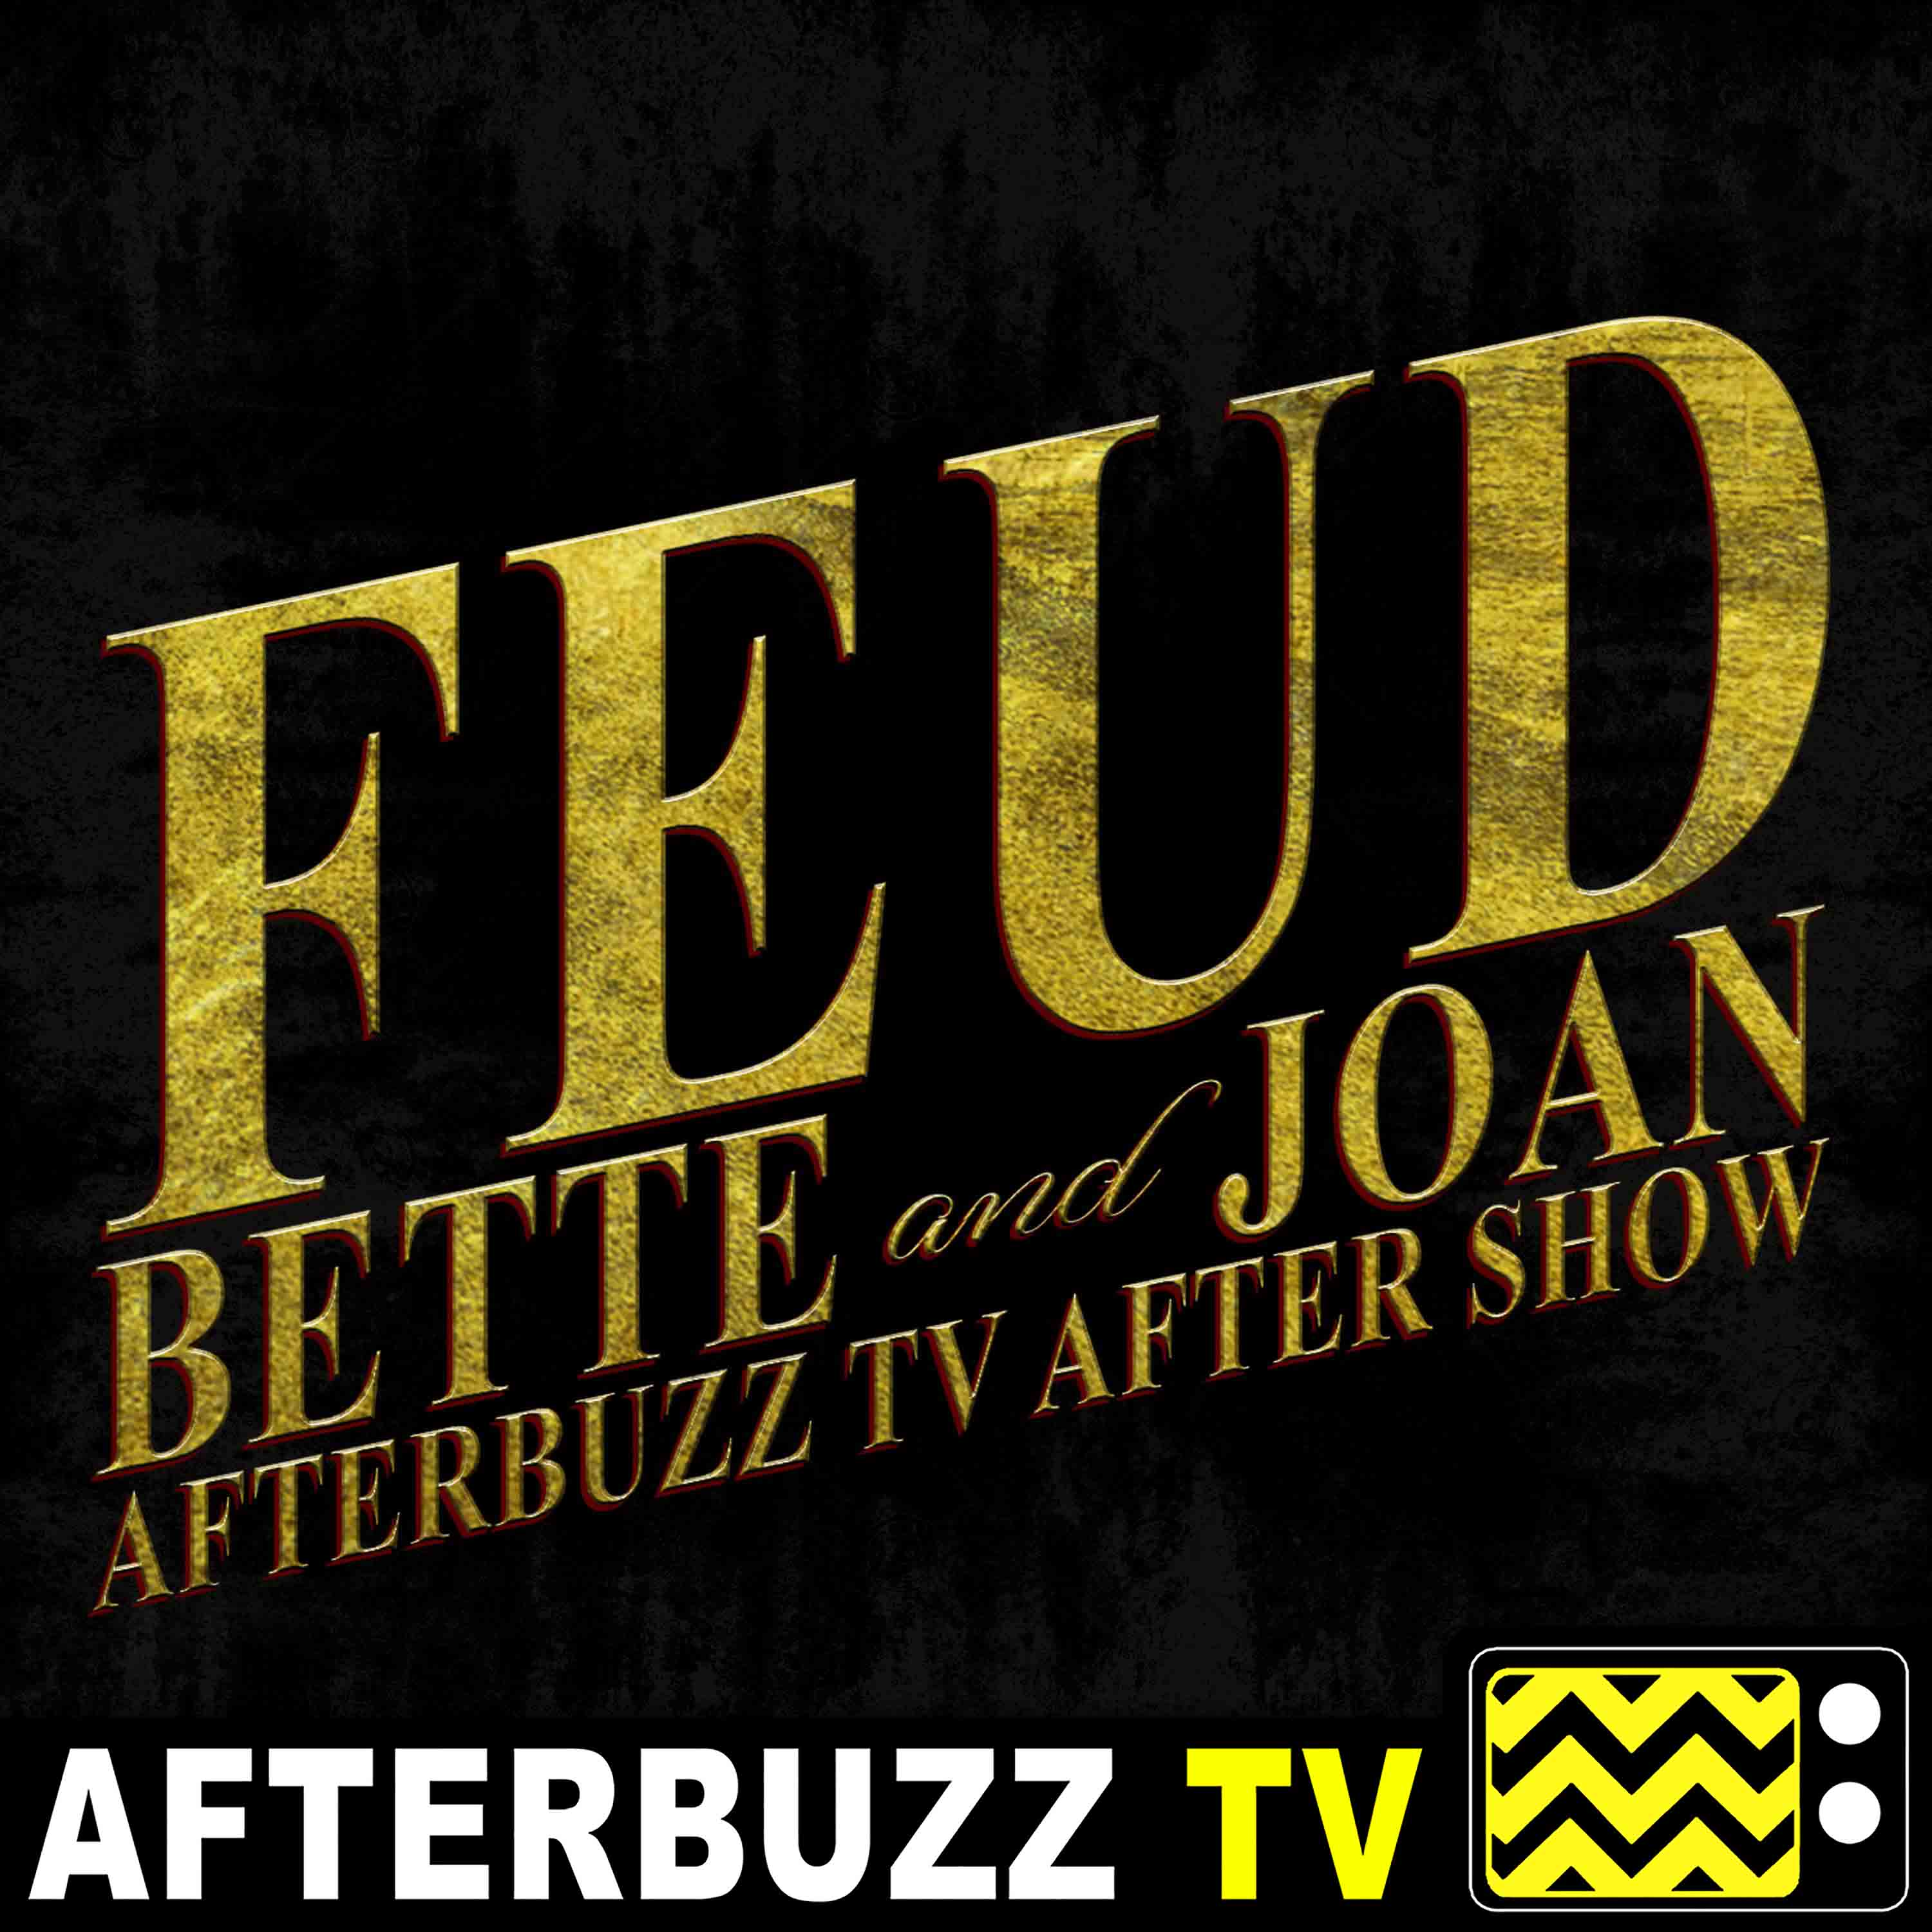 Feud: Bette And Joan After Show